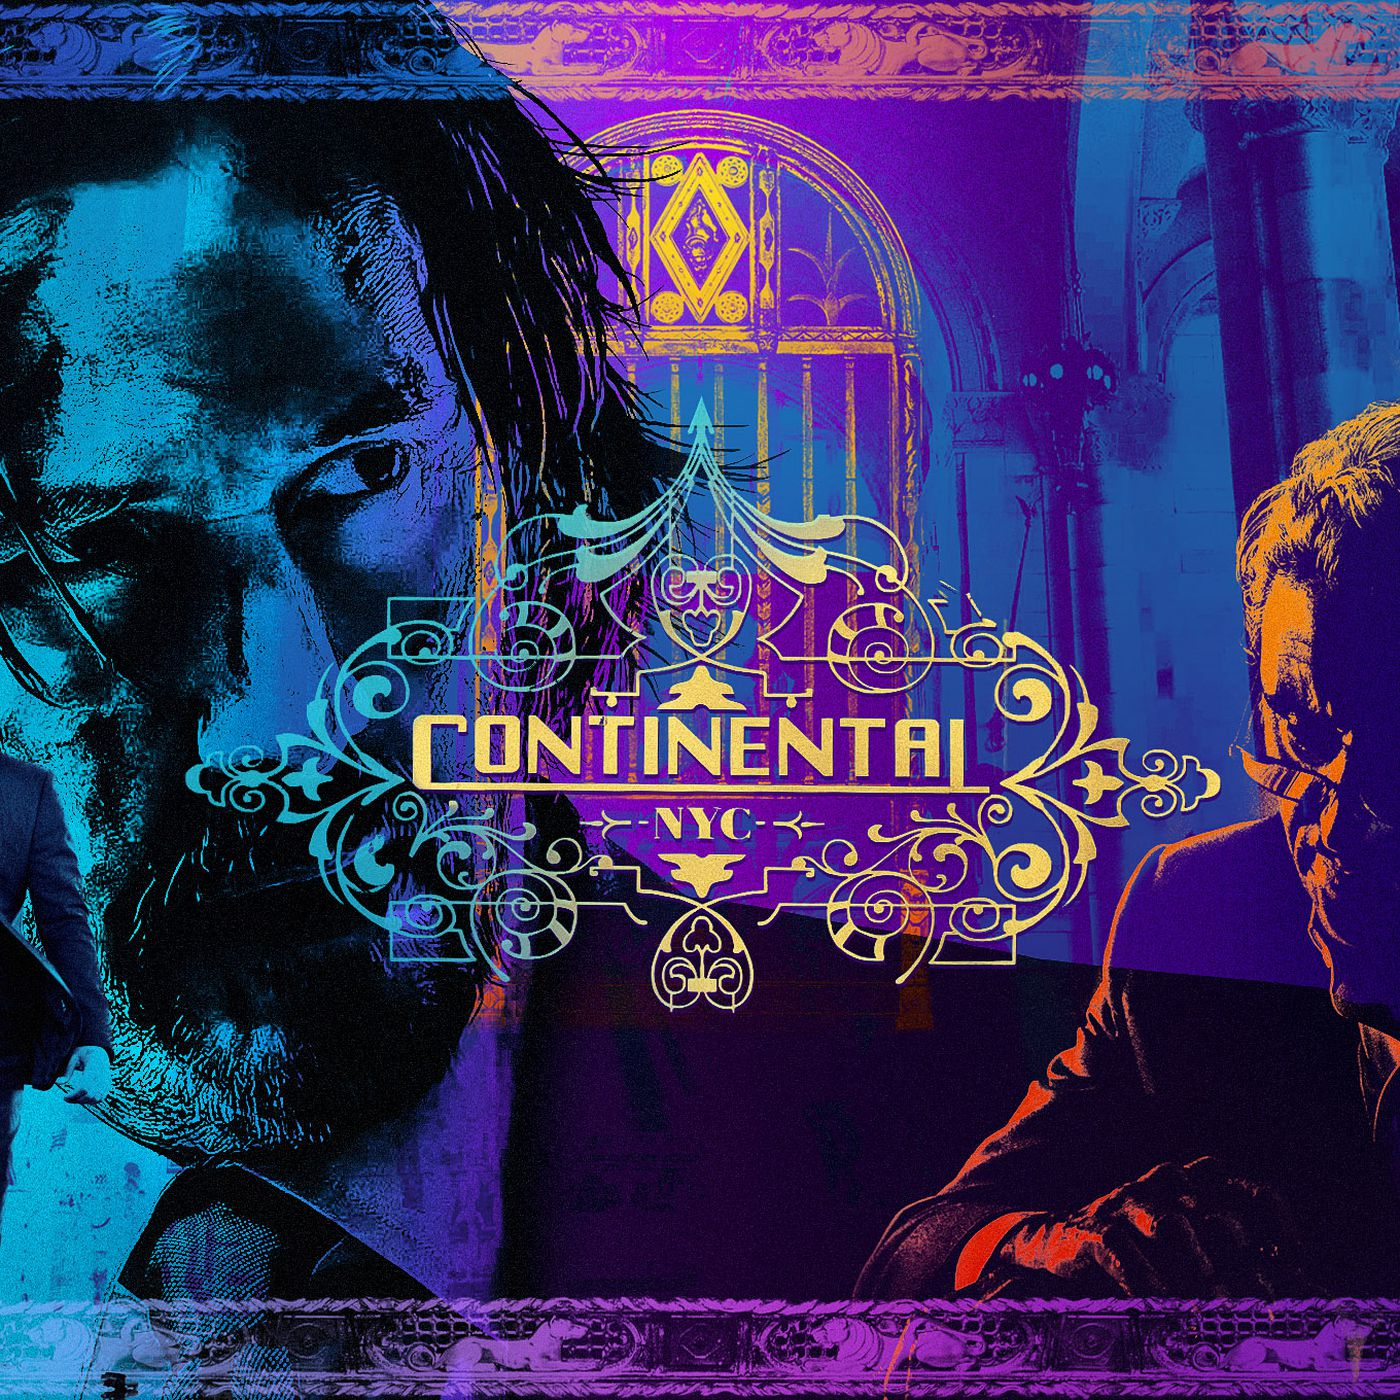 John Wick: The Continental, coins, and assassin mythology